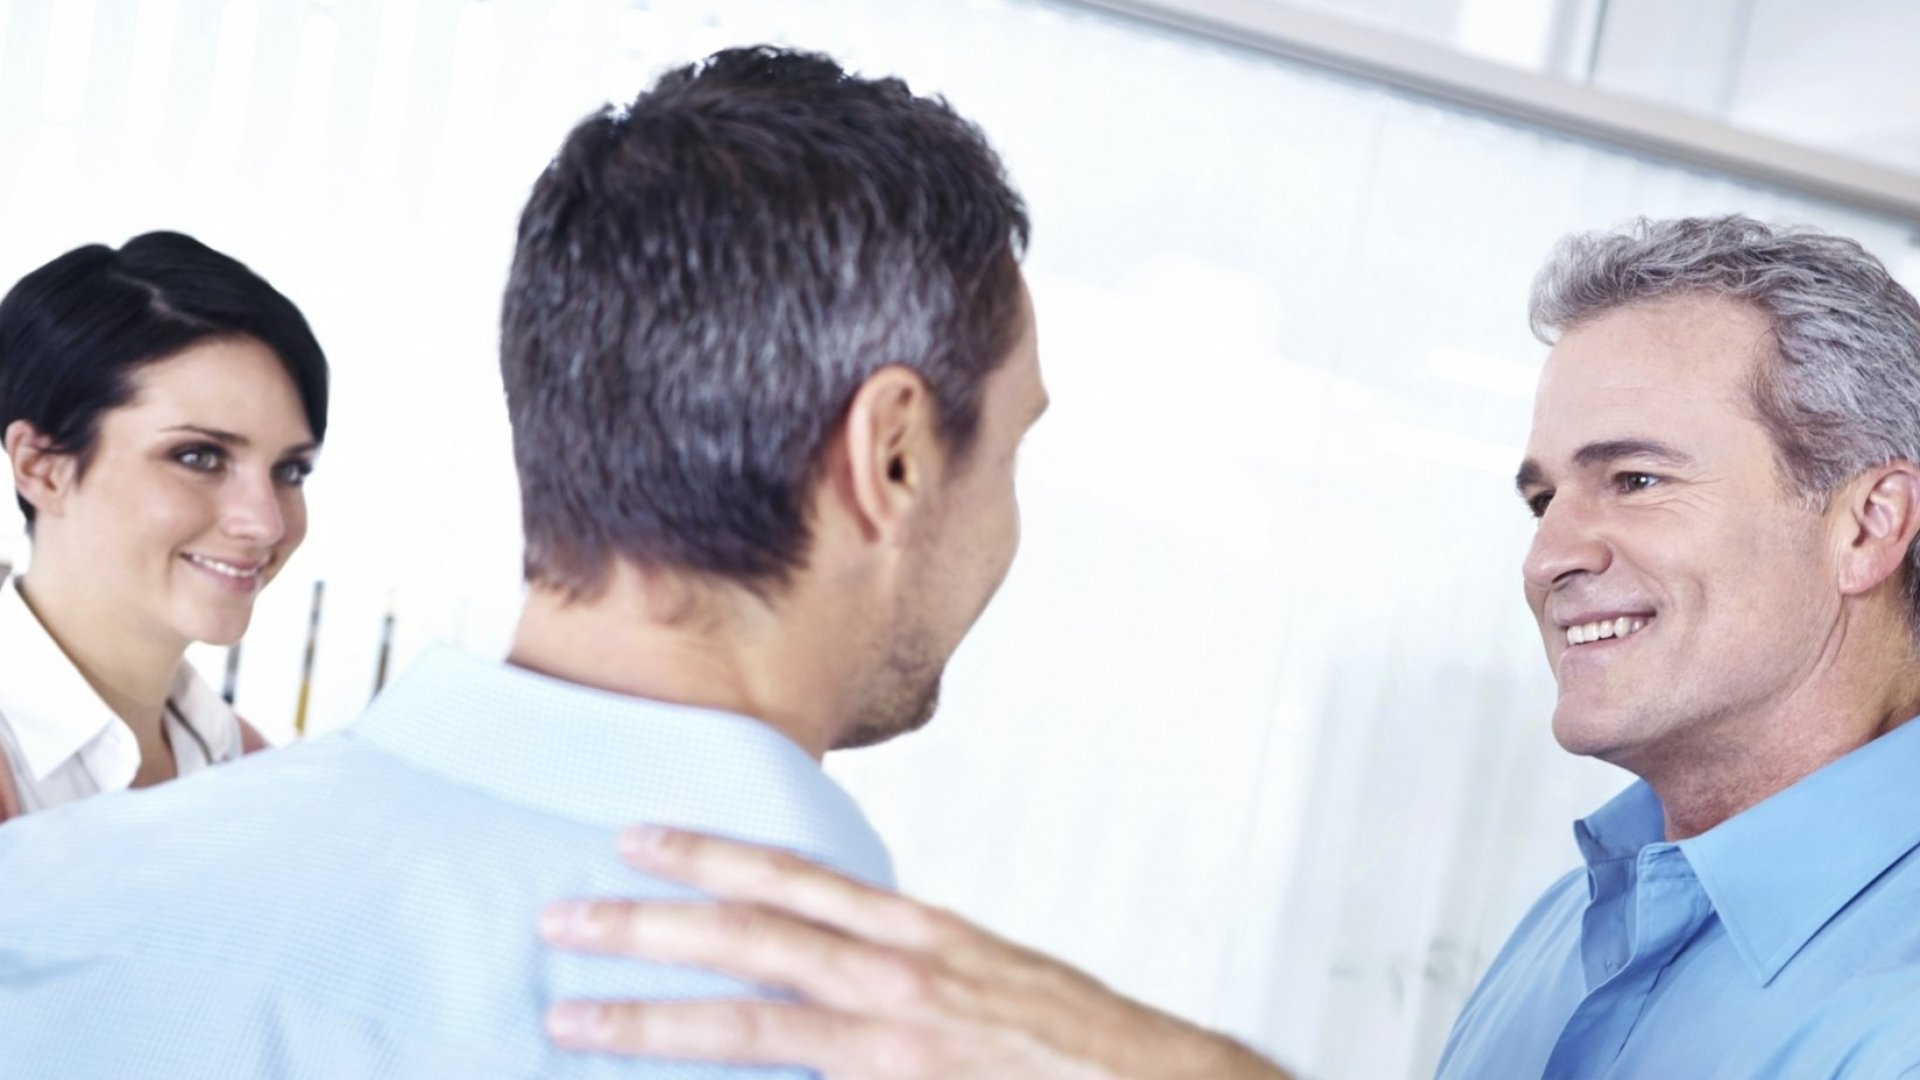 4 Reasons to Stay Close With Your Former Employees